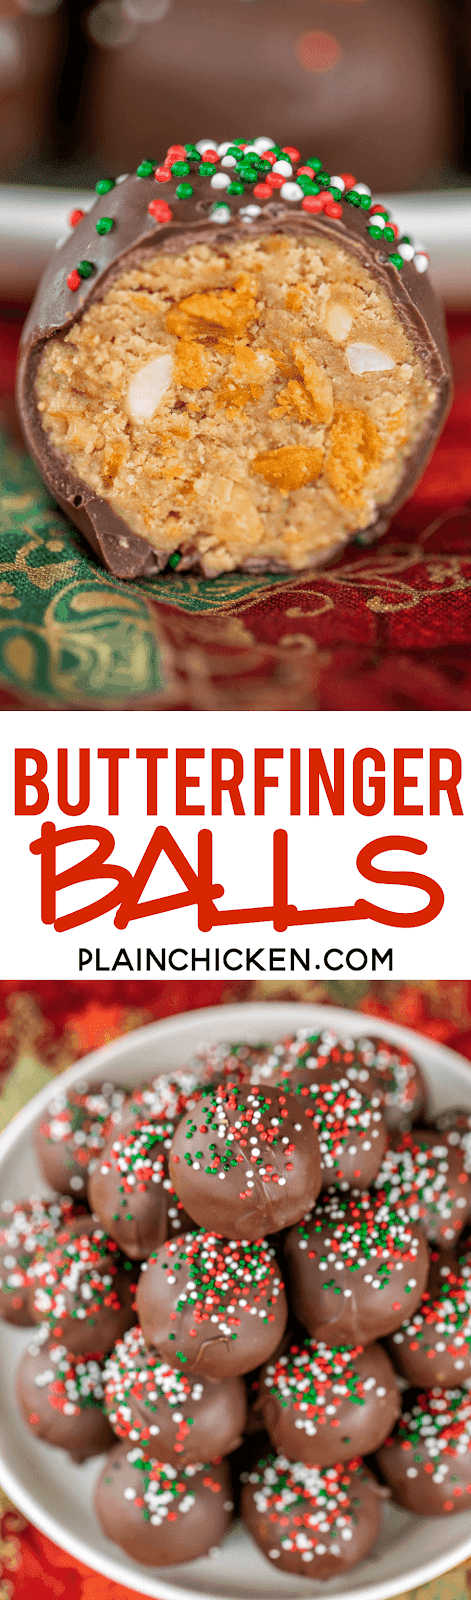 Butterfinger Balls - dangerously delicious!! Peanut butter, powdered sugar, graham crackers, Butterfinger bits, butter and chocolate candy coating. I could eat the whole batch! Great for parties, tailgating and homemade gifts! A must for the Butterfinger lover in your life! #candy #butterfinger #peanutbutter #dessert